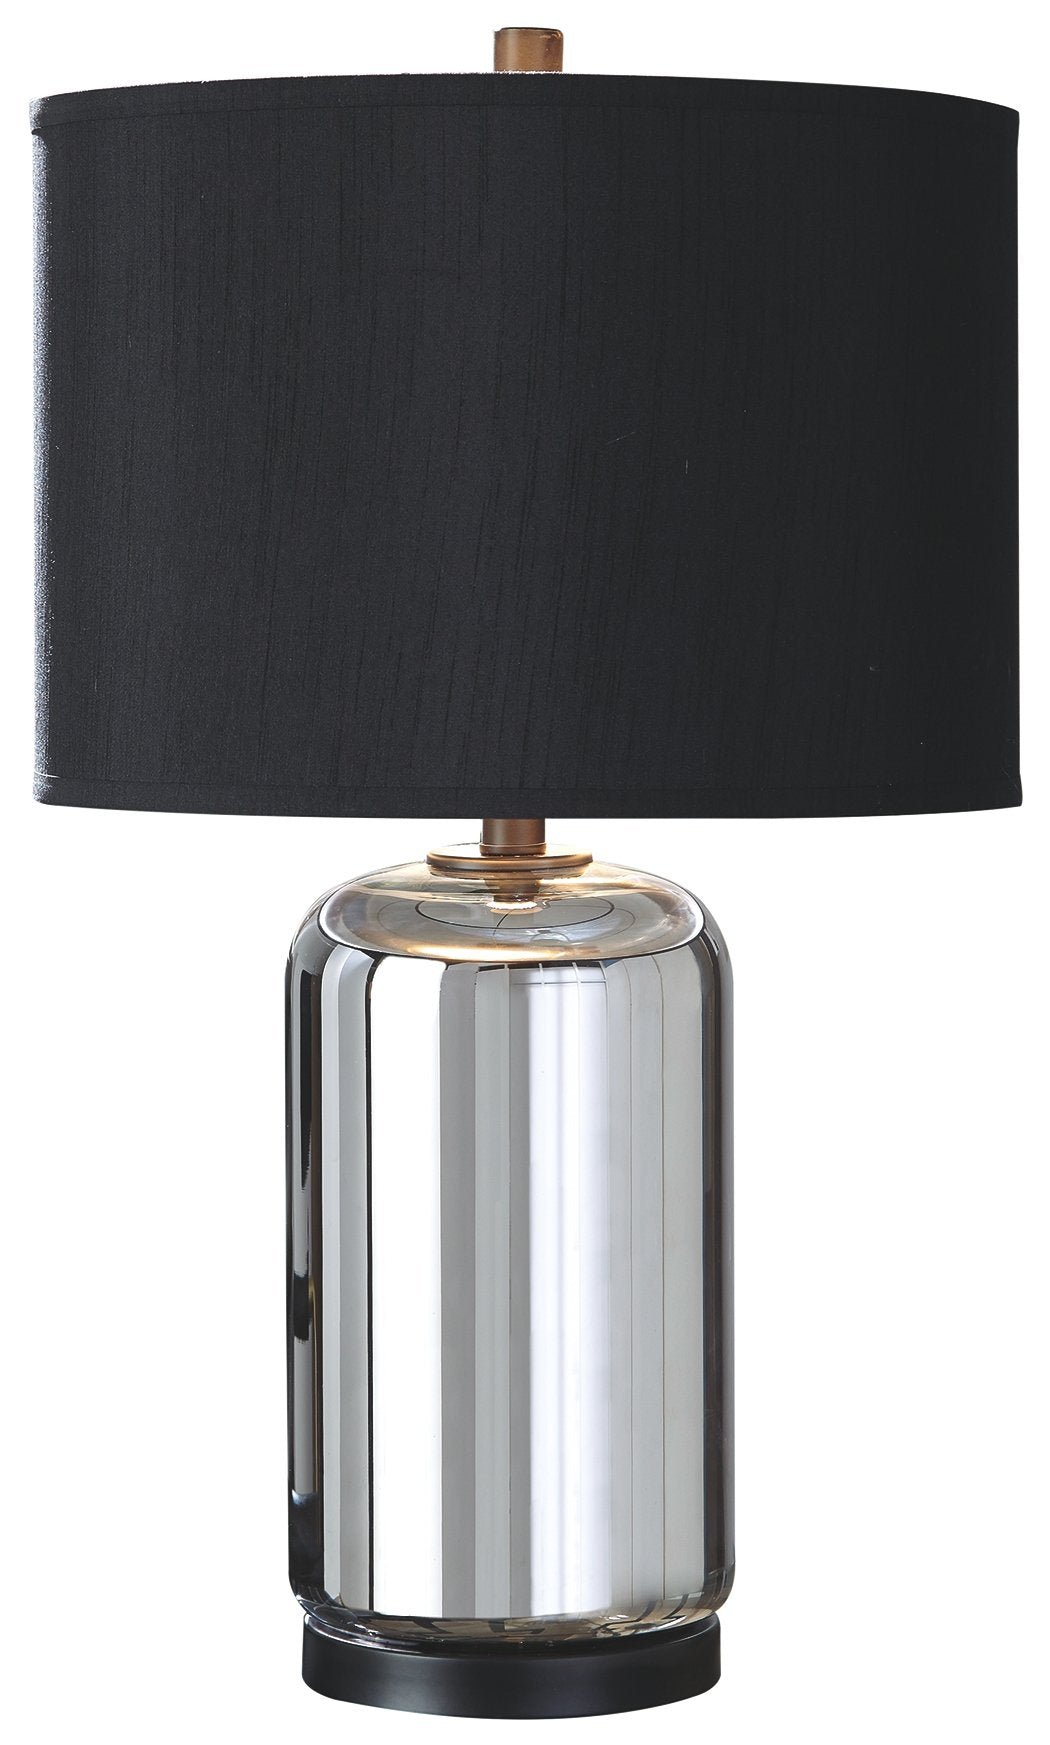 Marinda Signature Design by Ashley Table Lamp Pair